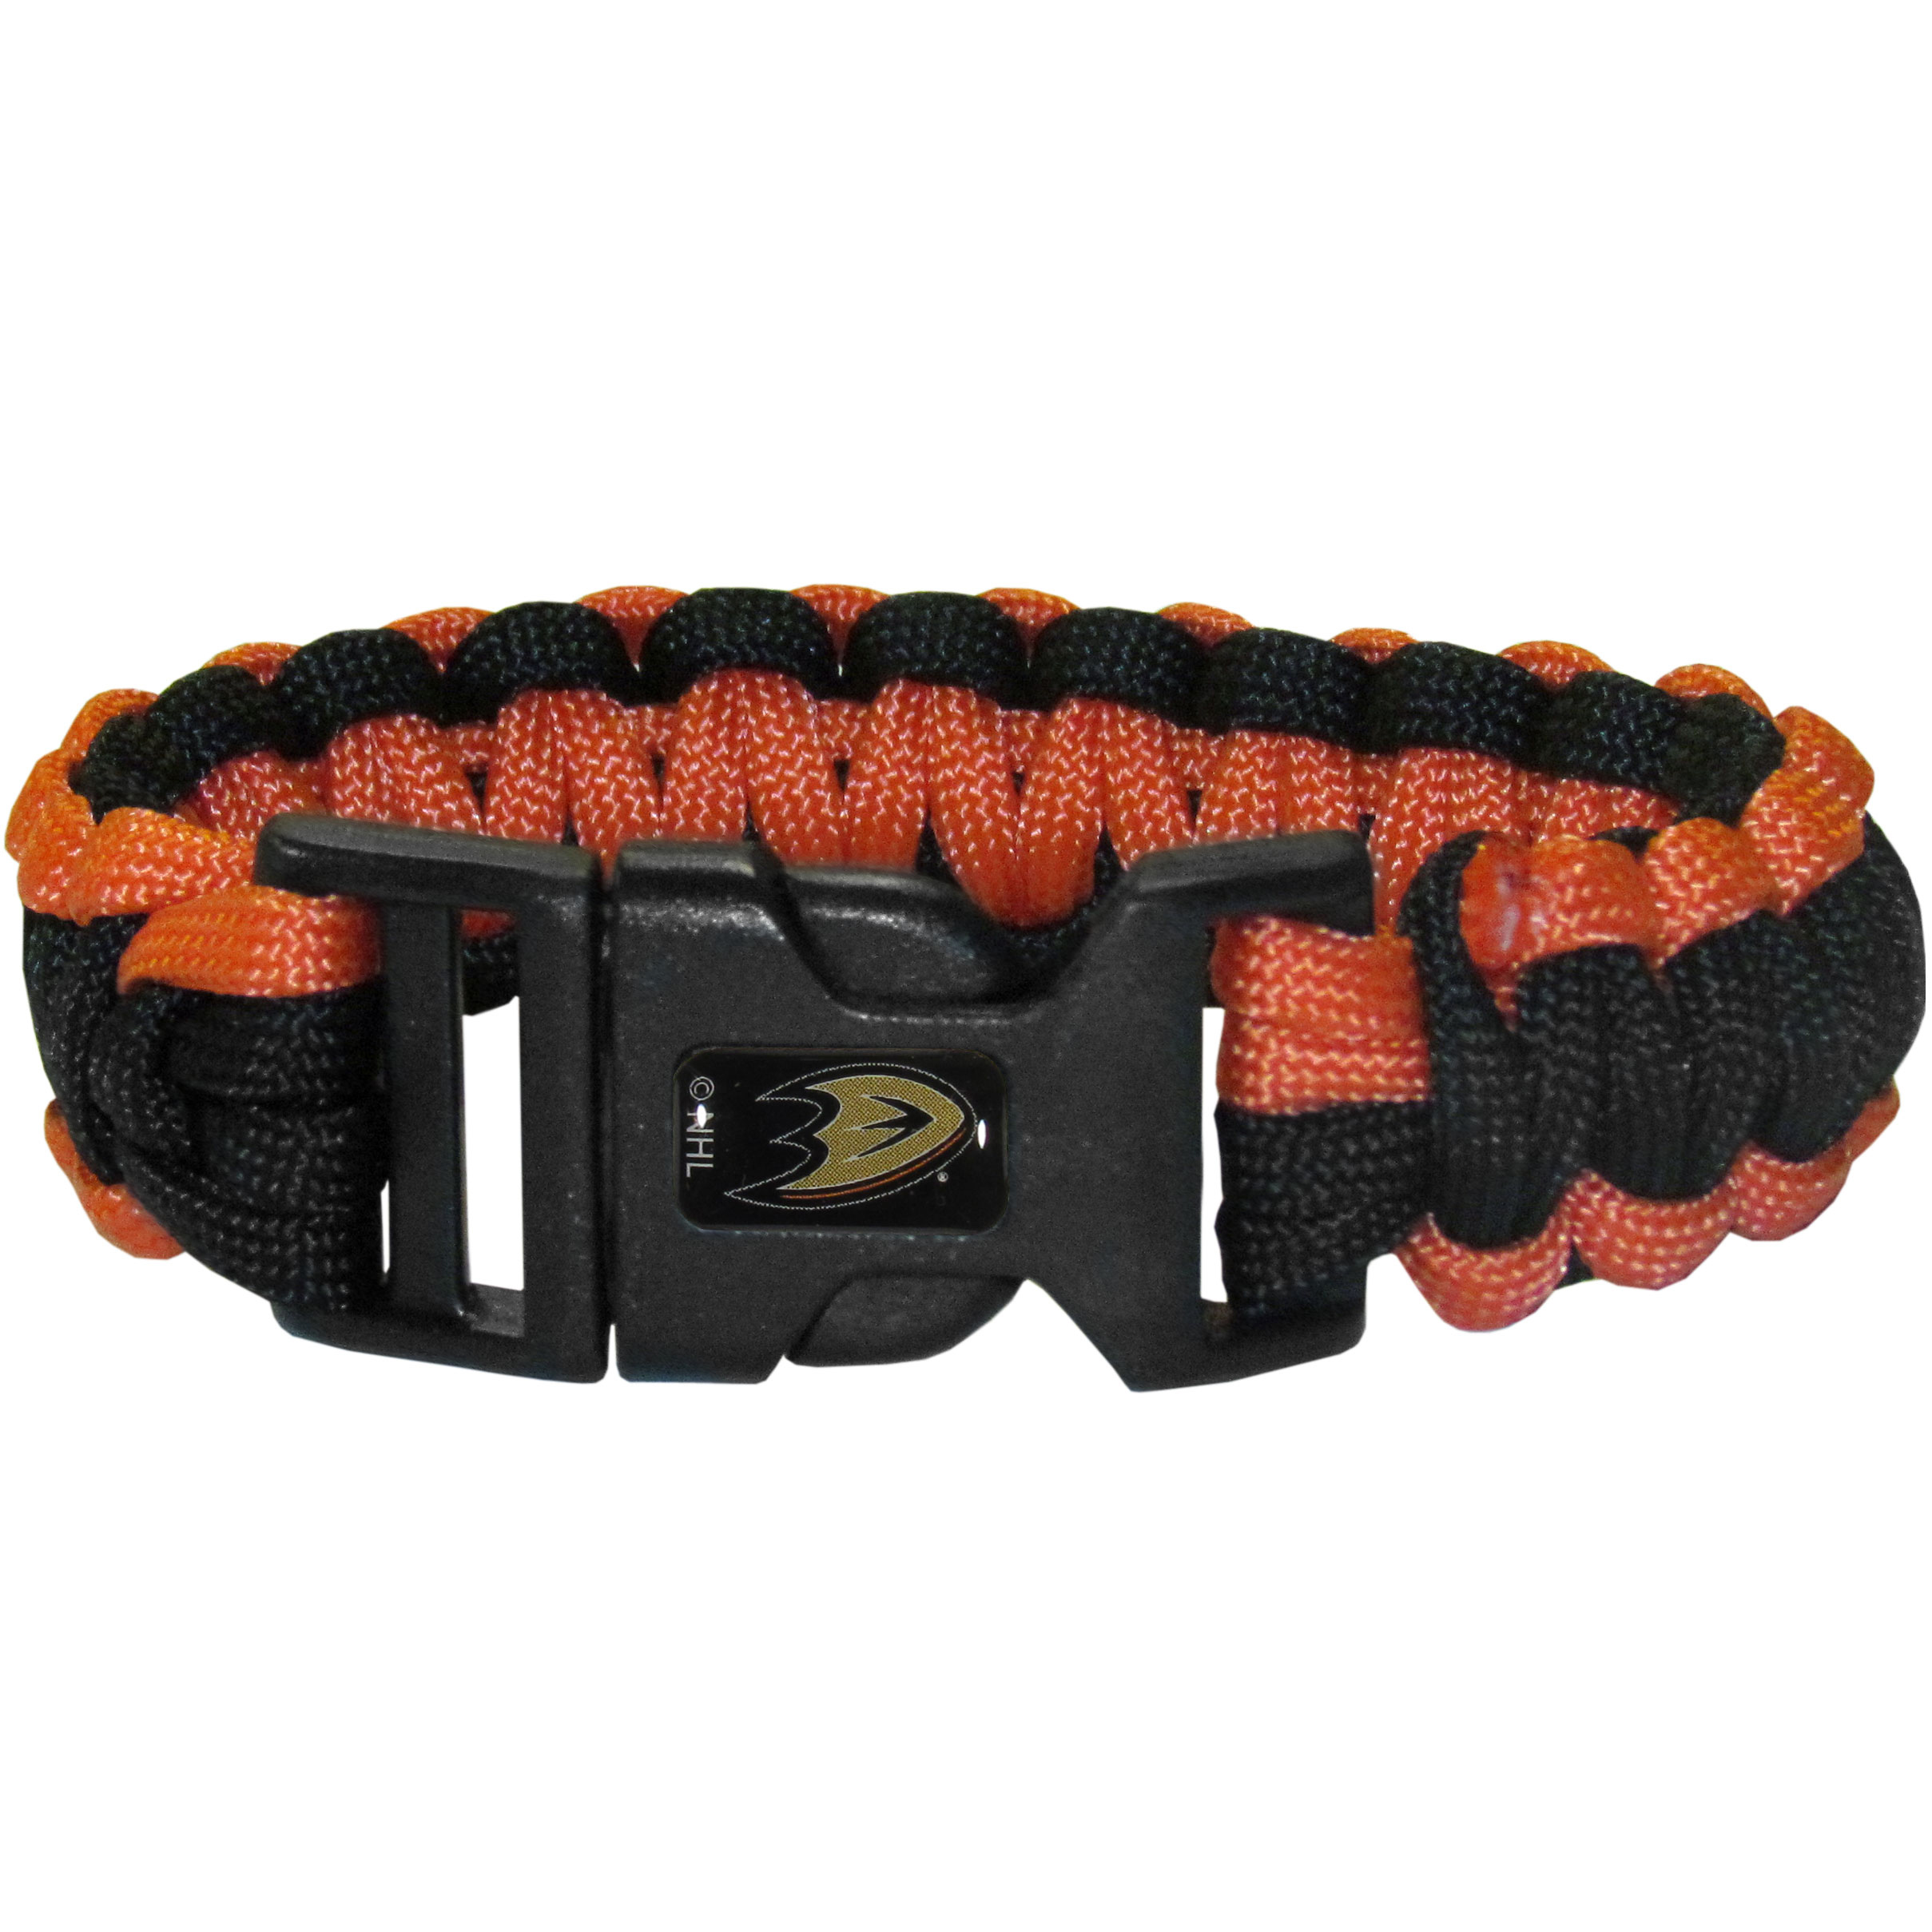 Anaheim Ducks® Survivor Bracelet - Our functional and fashionable Anaheim Ducks® survivor bracelets contain 2 individual 300lb test paracord rated cords that are each 5 feet long. The team colored cords can be pulled apart to be used in any number of emergencies and look great while worn. The bracelet features a team emblem on the clasp.